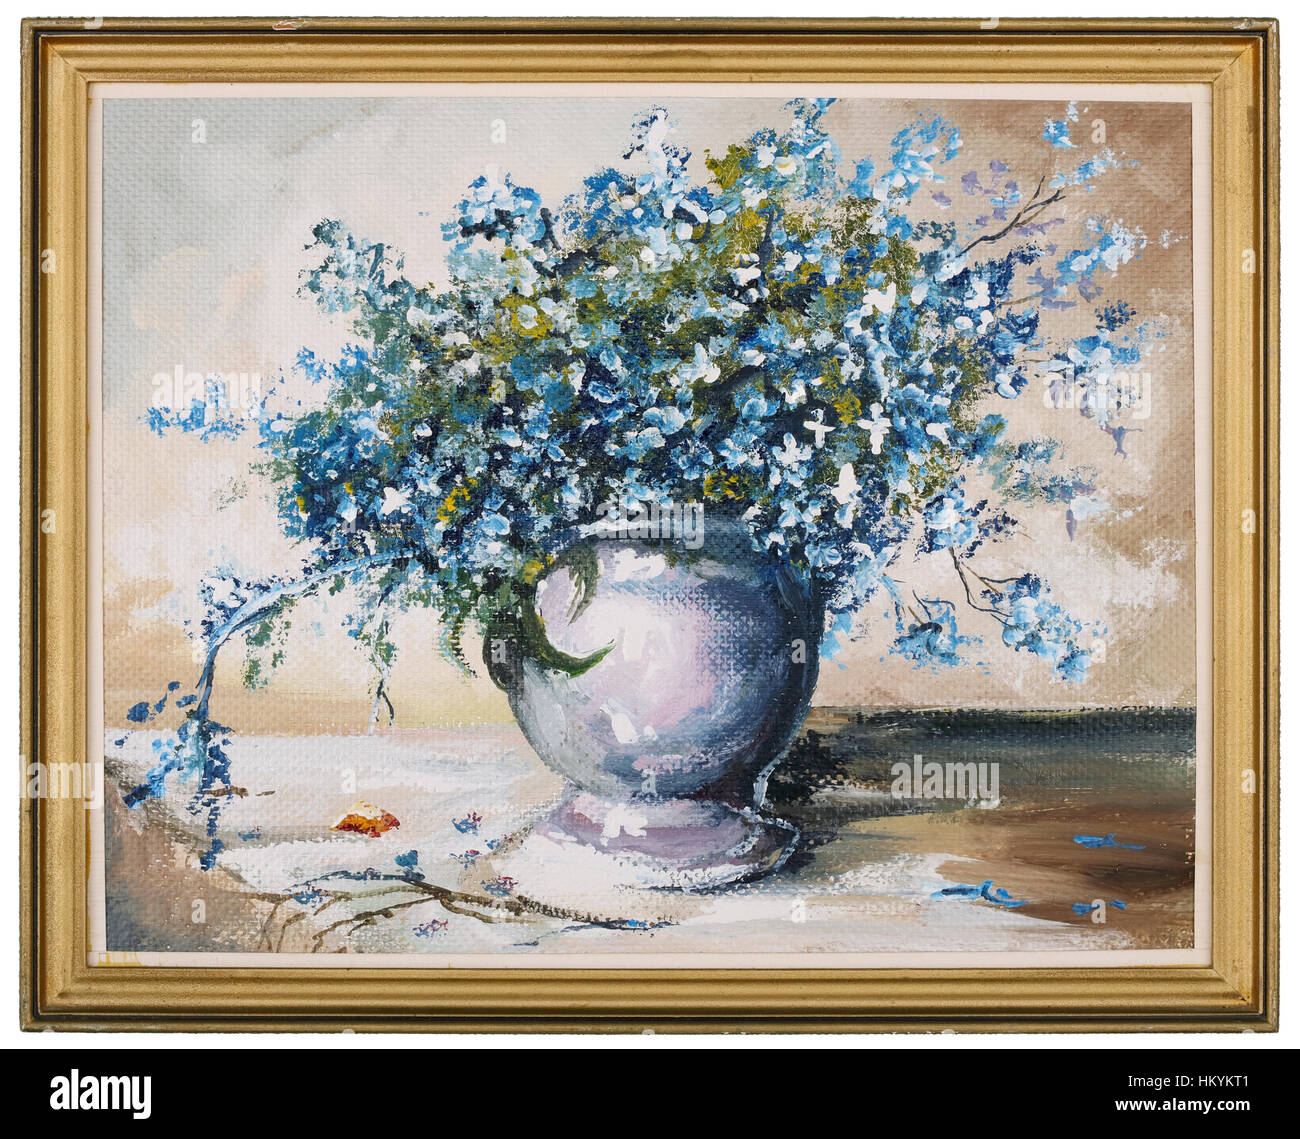 Oil Painting Abstract Flower In Stock Photos & Oil Painting Abstract on abstract oil painting, abstract heart art painting, abstract art paintings by famous artist, sunflower paintings vase, abstract ceramic vases, claude monet flower vase, abstract tulip paintings, pencil drawing still life flowers in a vase, abstract paintings of flowers, abstract art paintings flowers, folk art flower vase, abstract drawings of flowers,